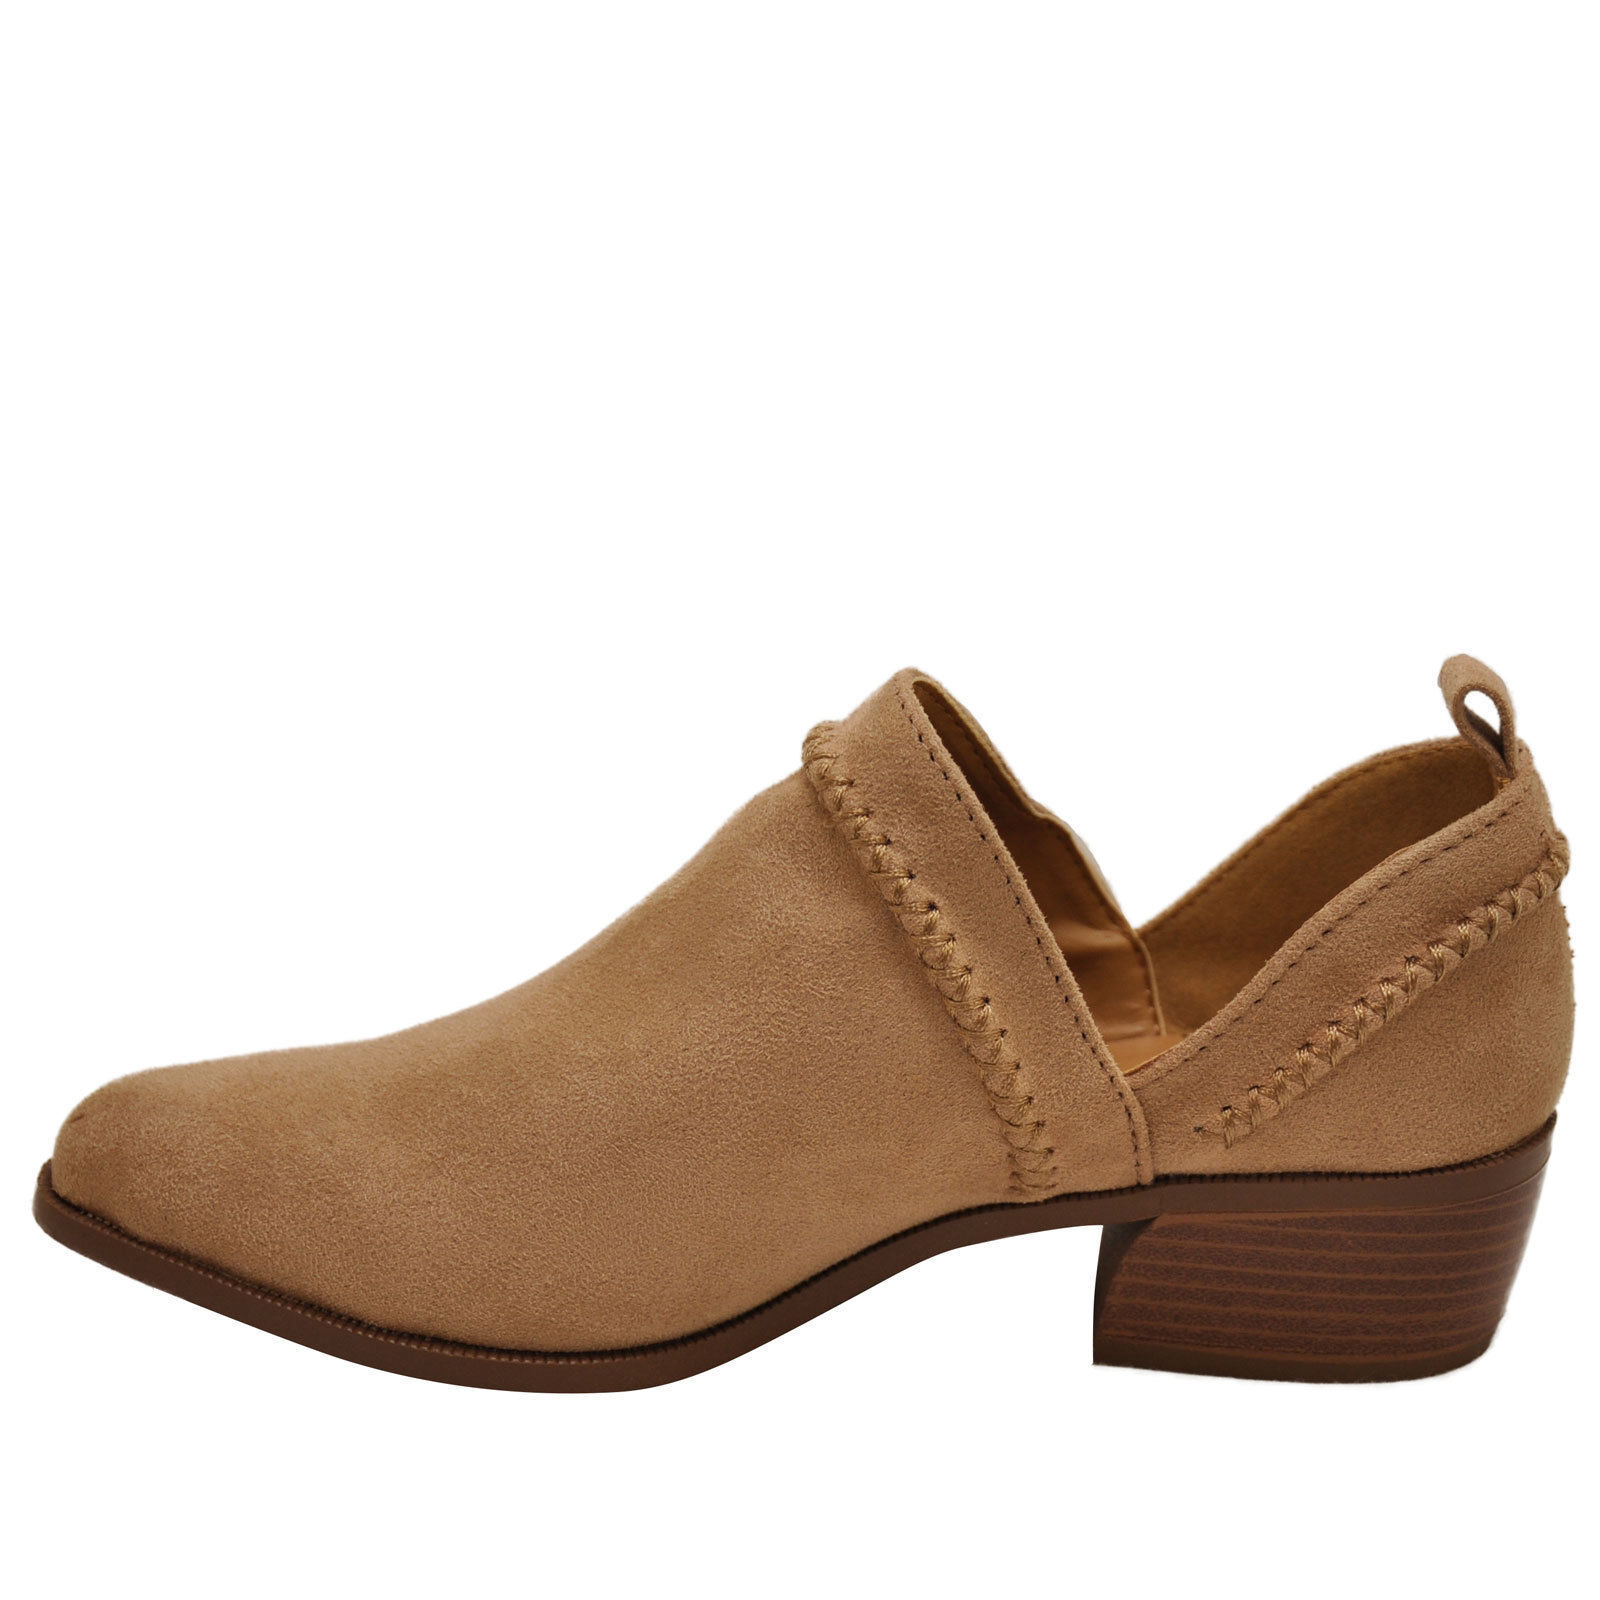 Qupid RAGER 24 Warm Taupe Women's Cross Stitch V Cut Ankle Booties